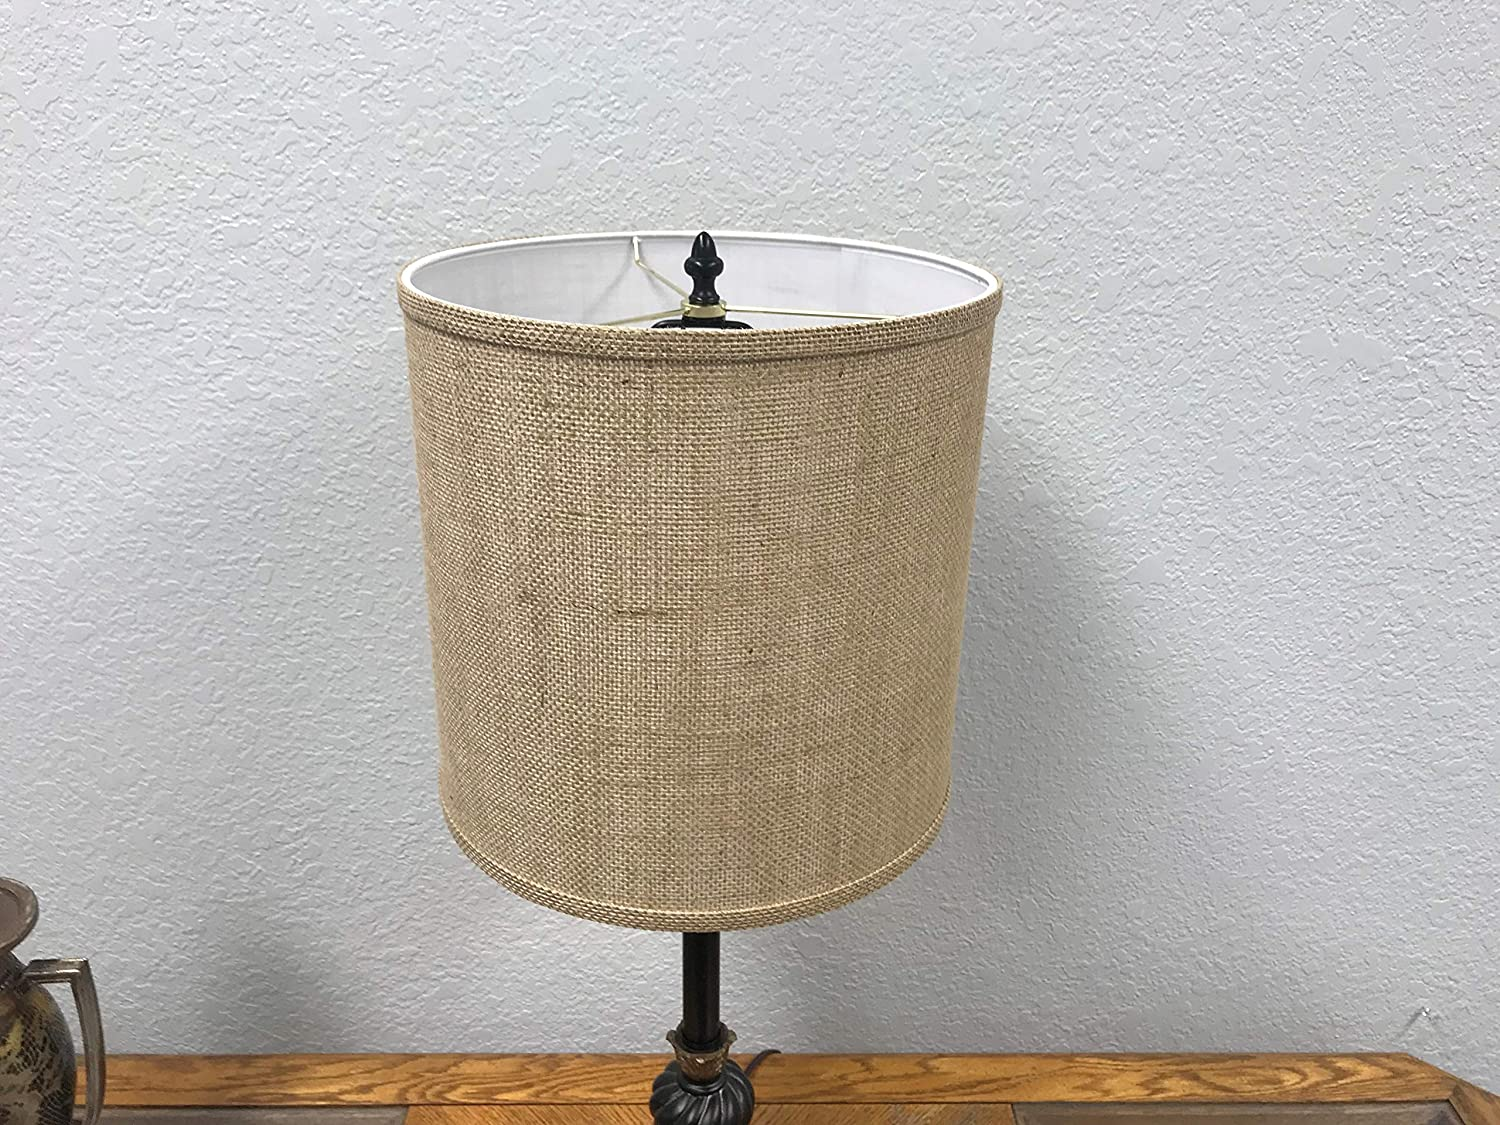 Burlap Lamp Shade For Rustic Lamp